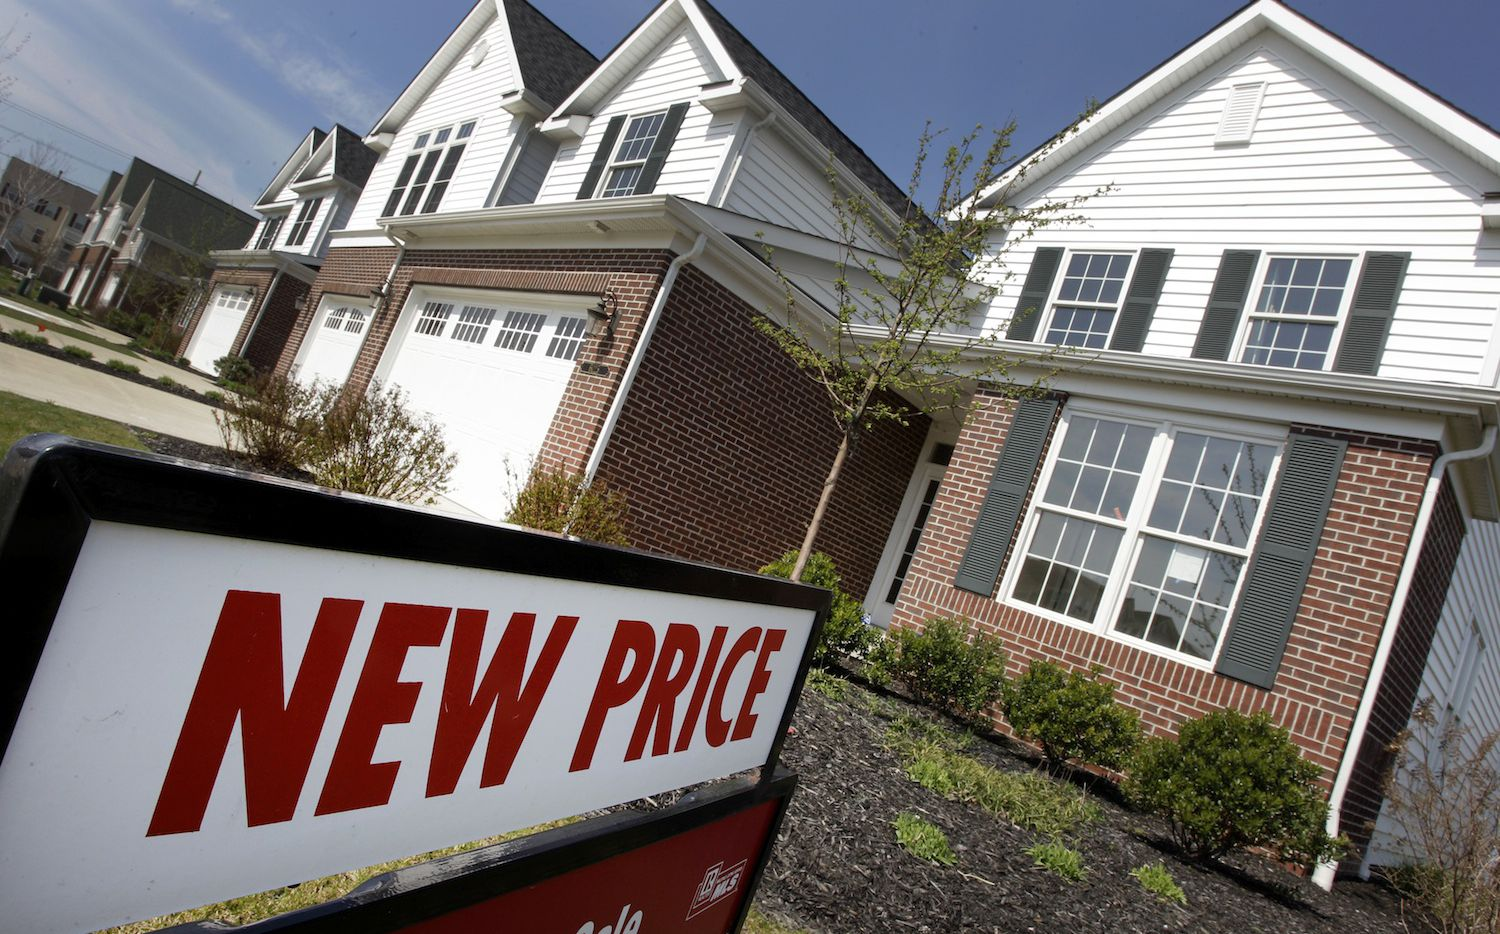 D-FW home prices are 20% to 24% over valued according to Fitch Ratings.